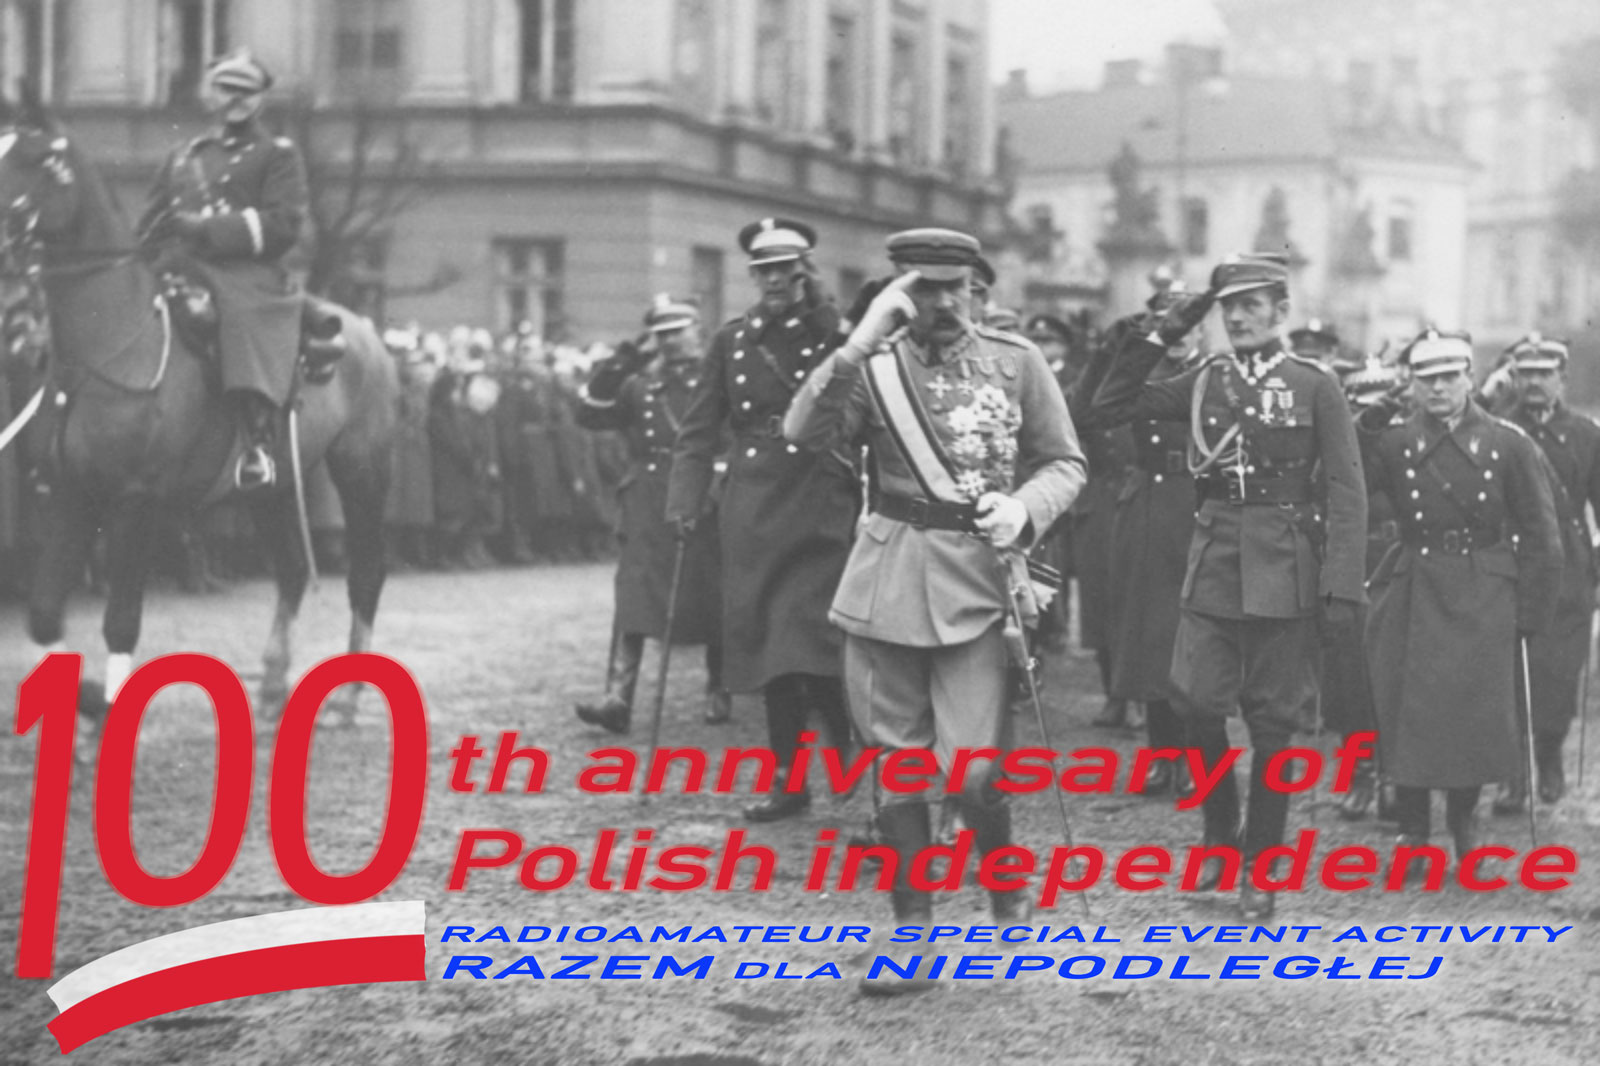 100th anniversary of  Polish independence